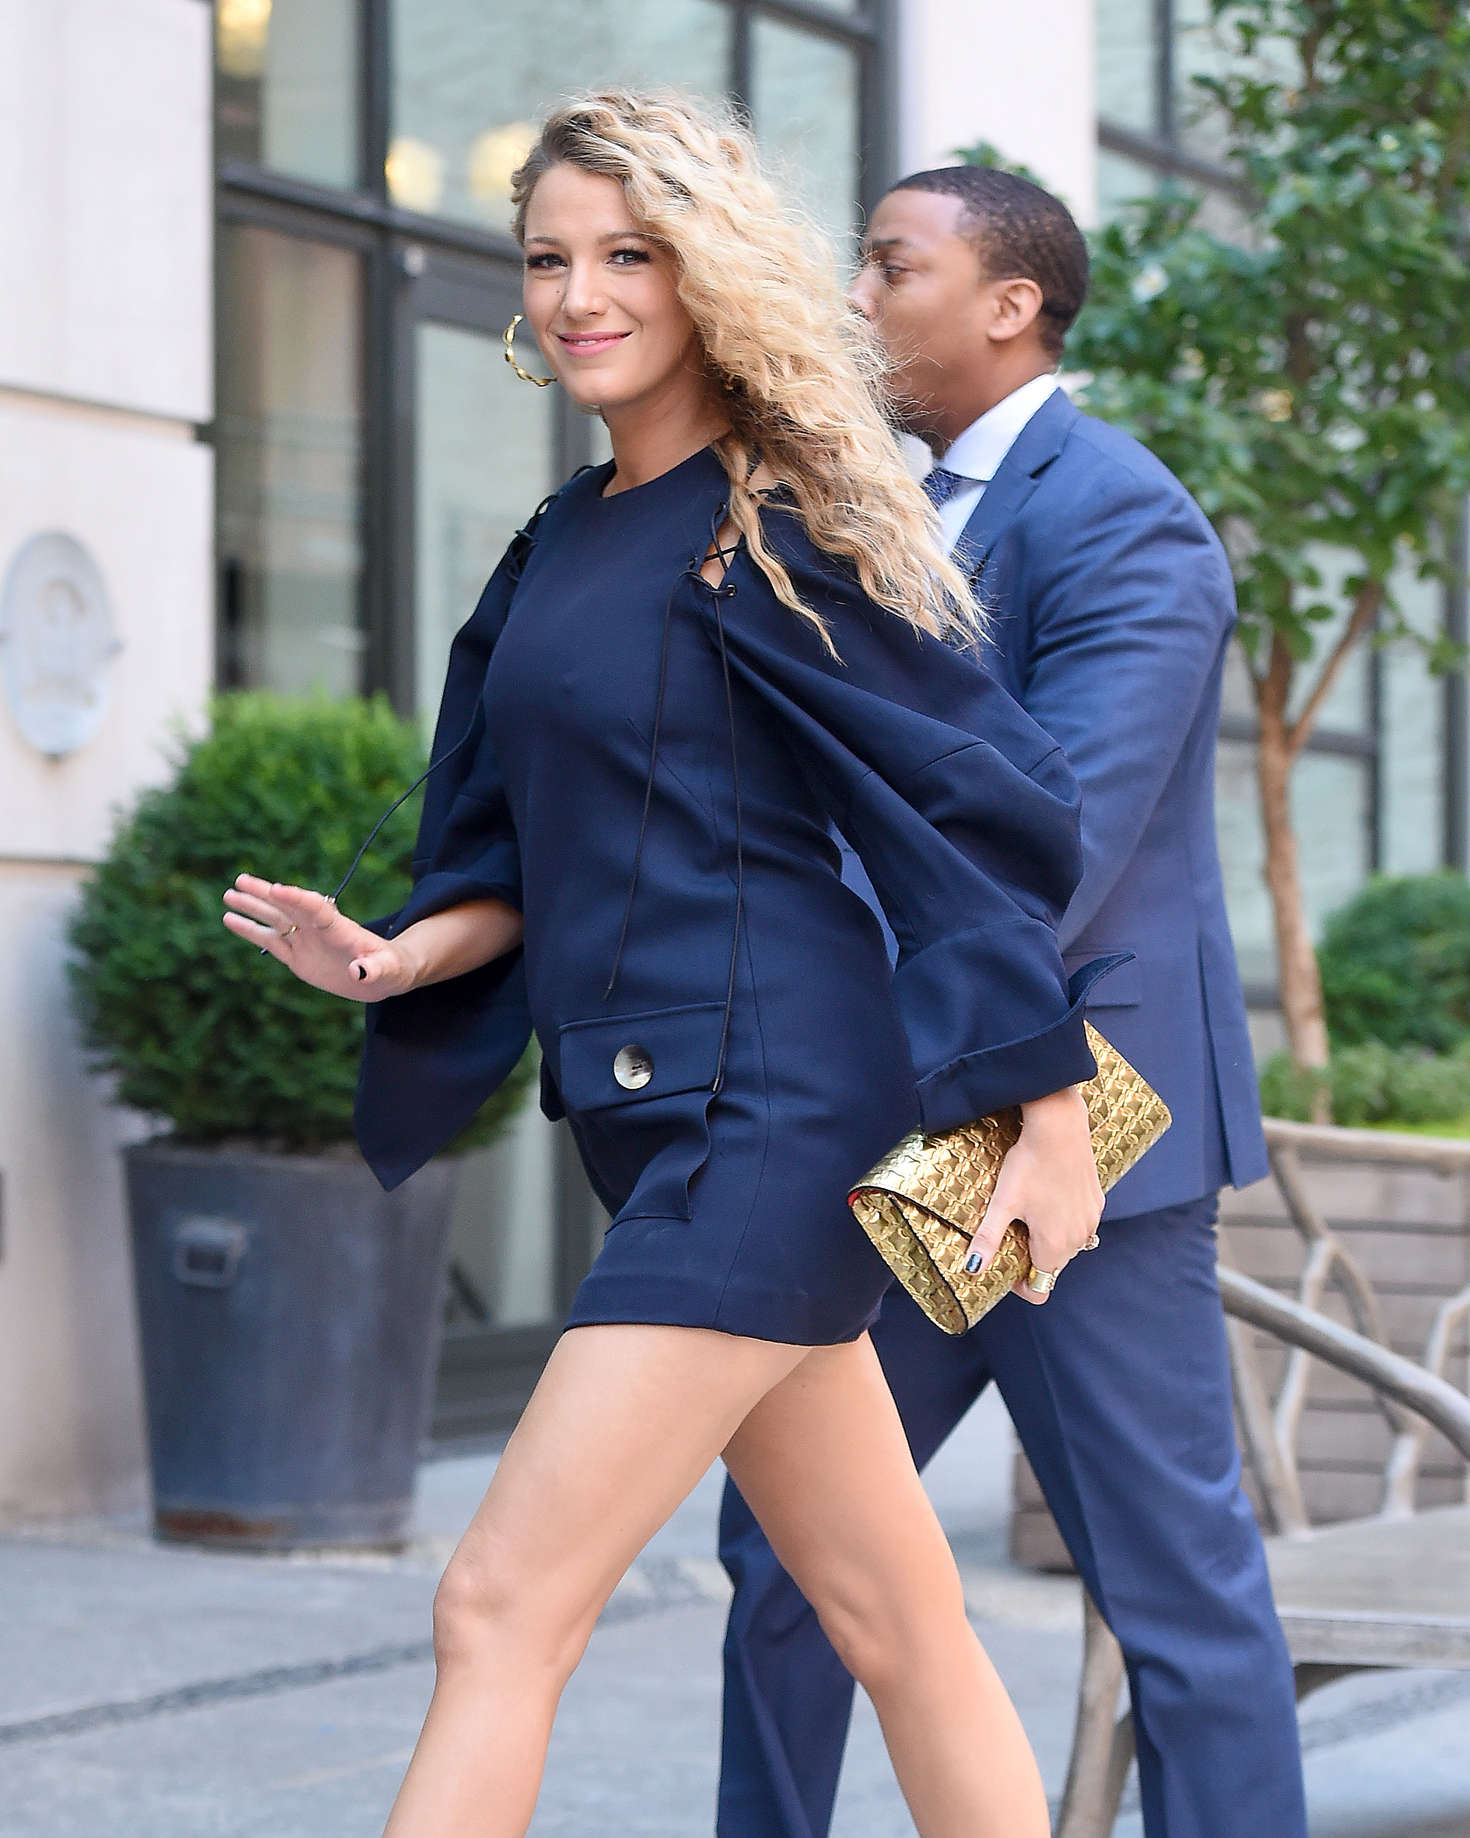 Blake Lively in Short Blue Dress Out in New York City